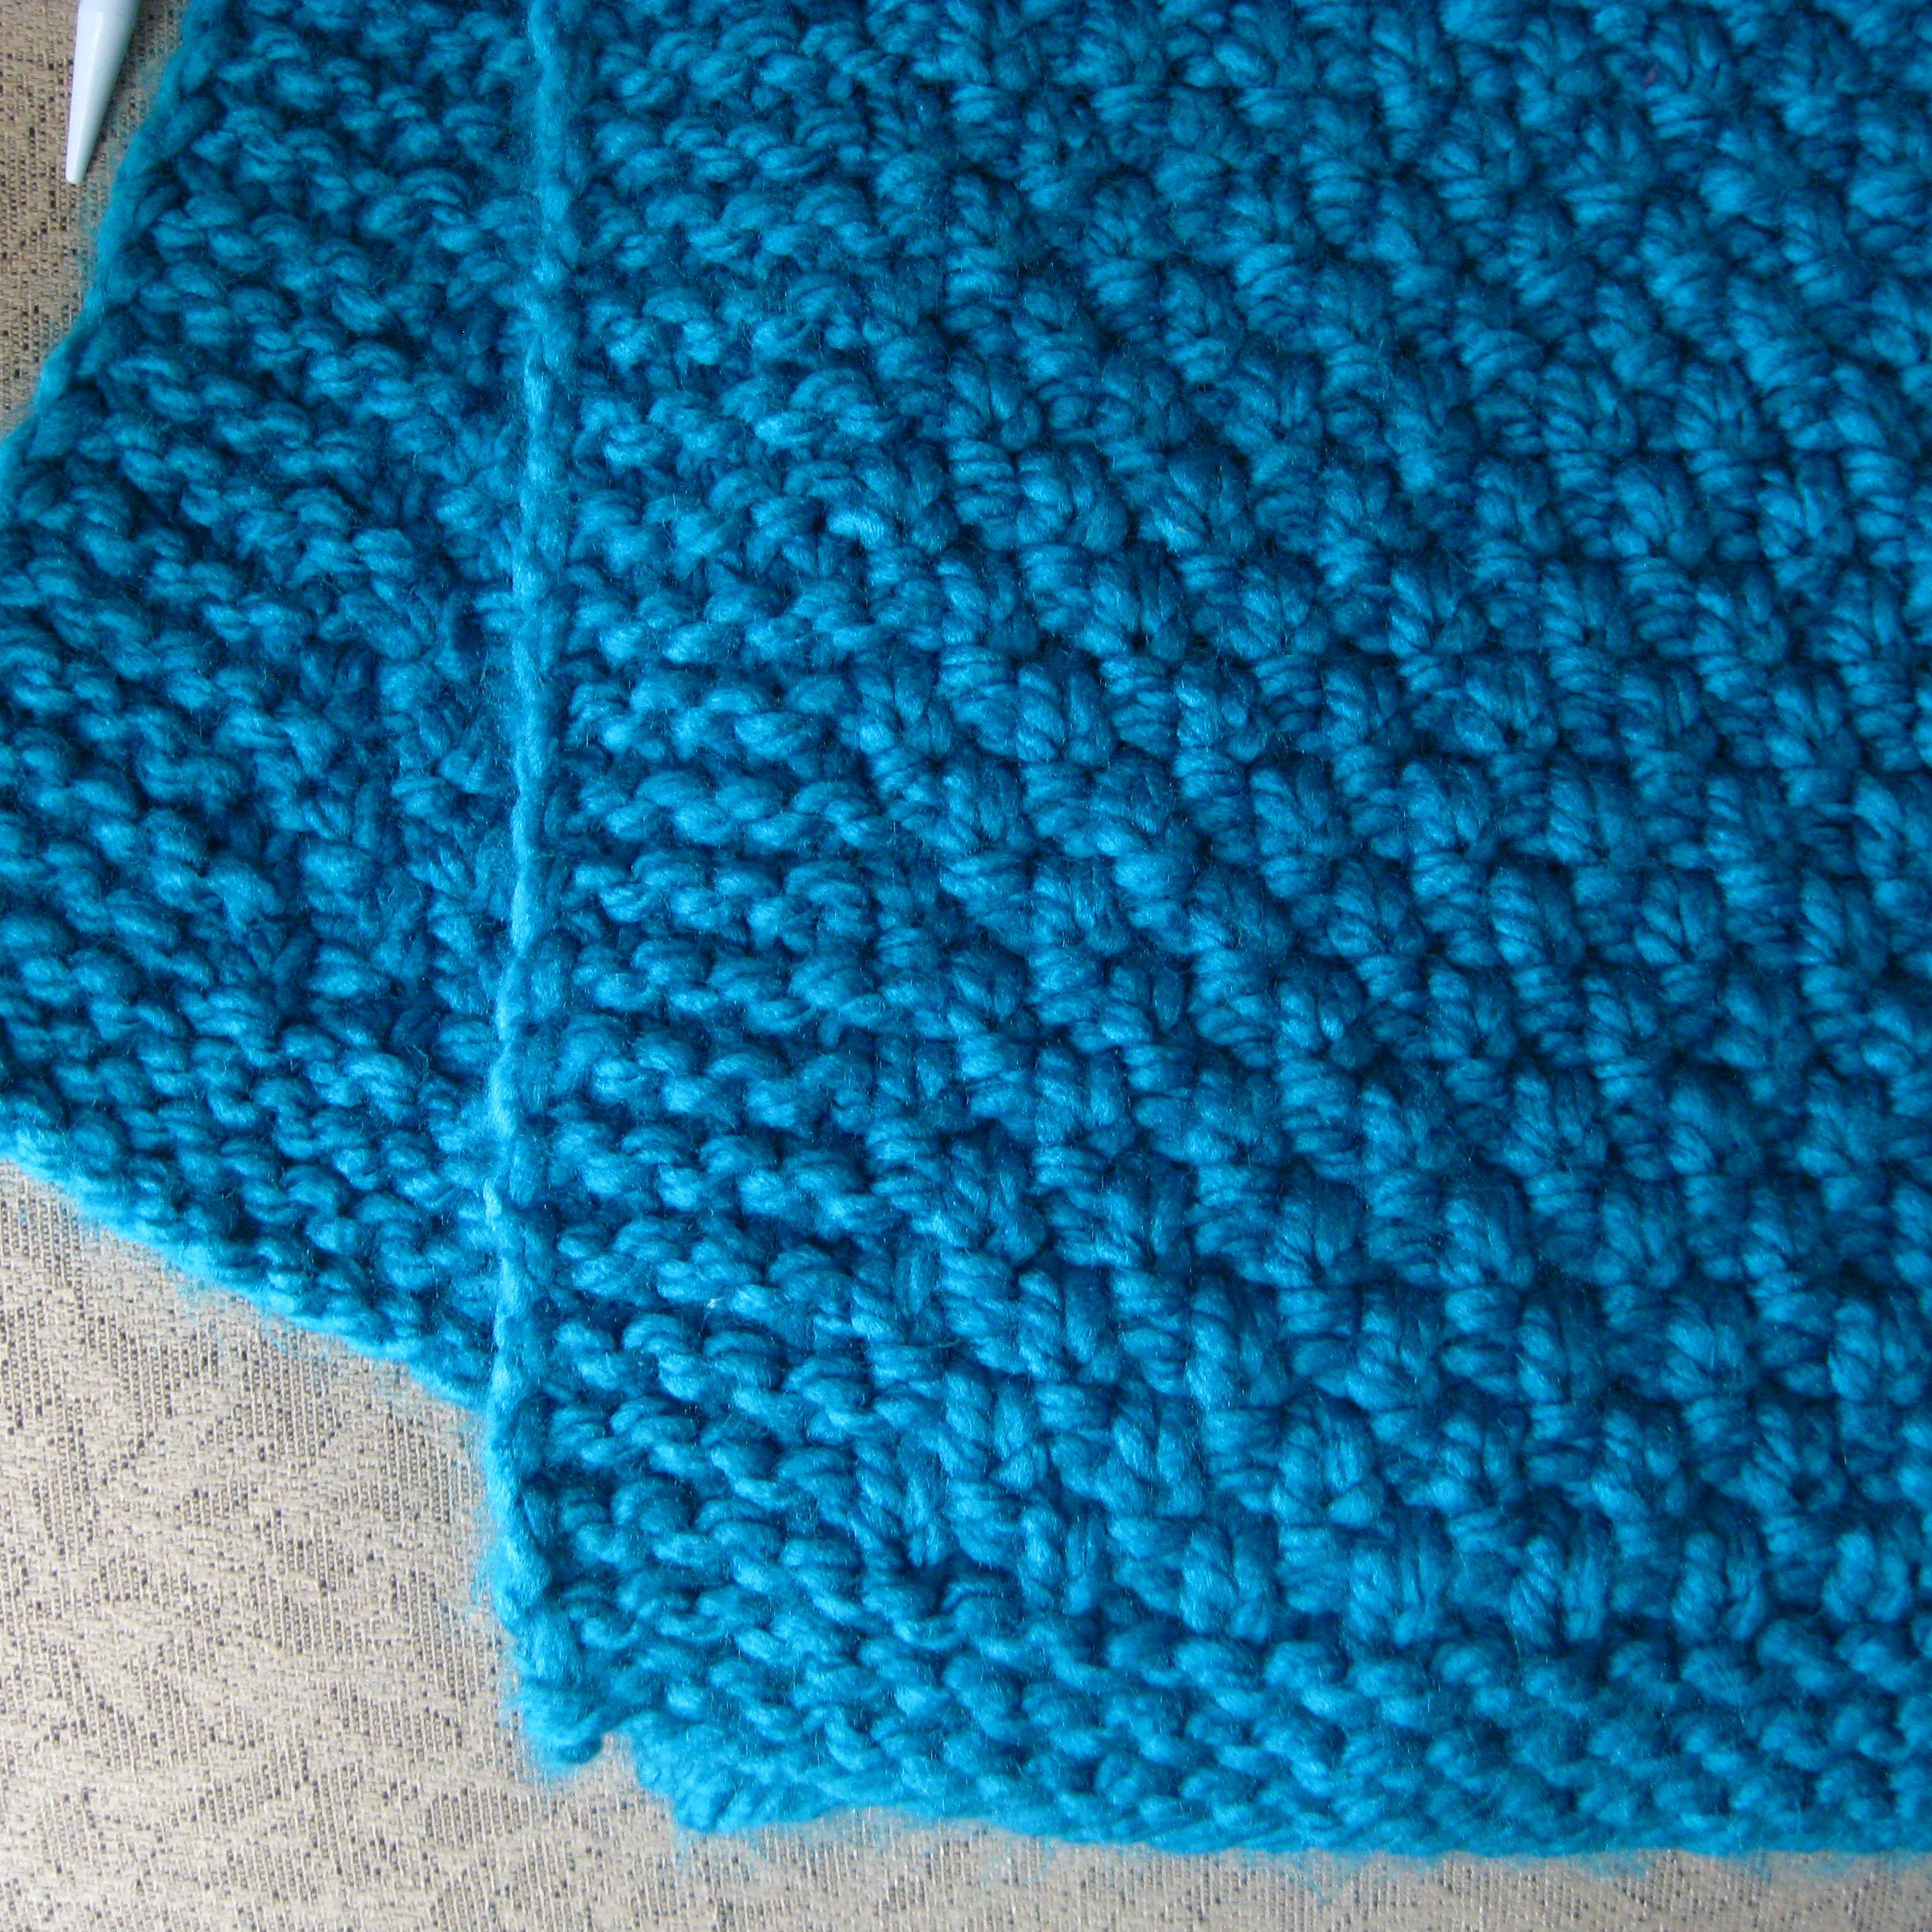 How To Knit A Moss Stitch Lap Afghan